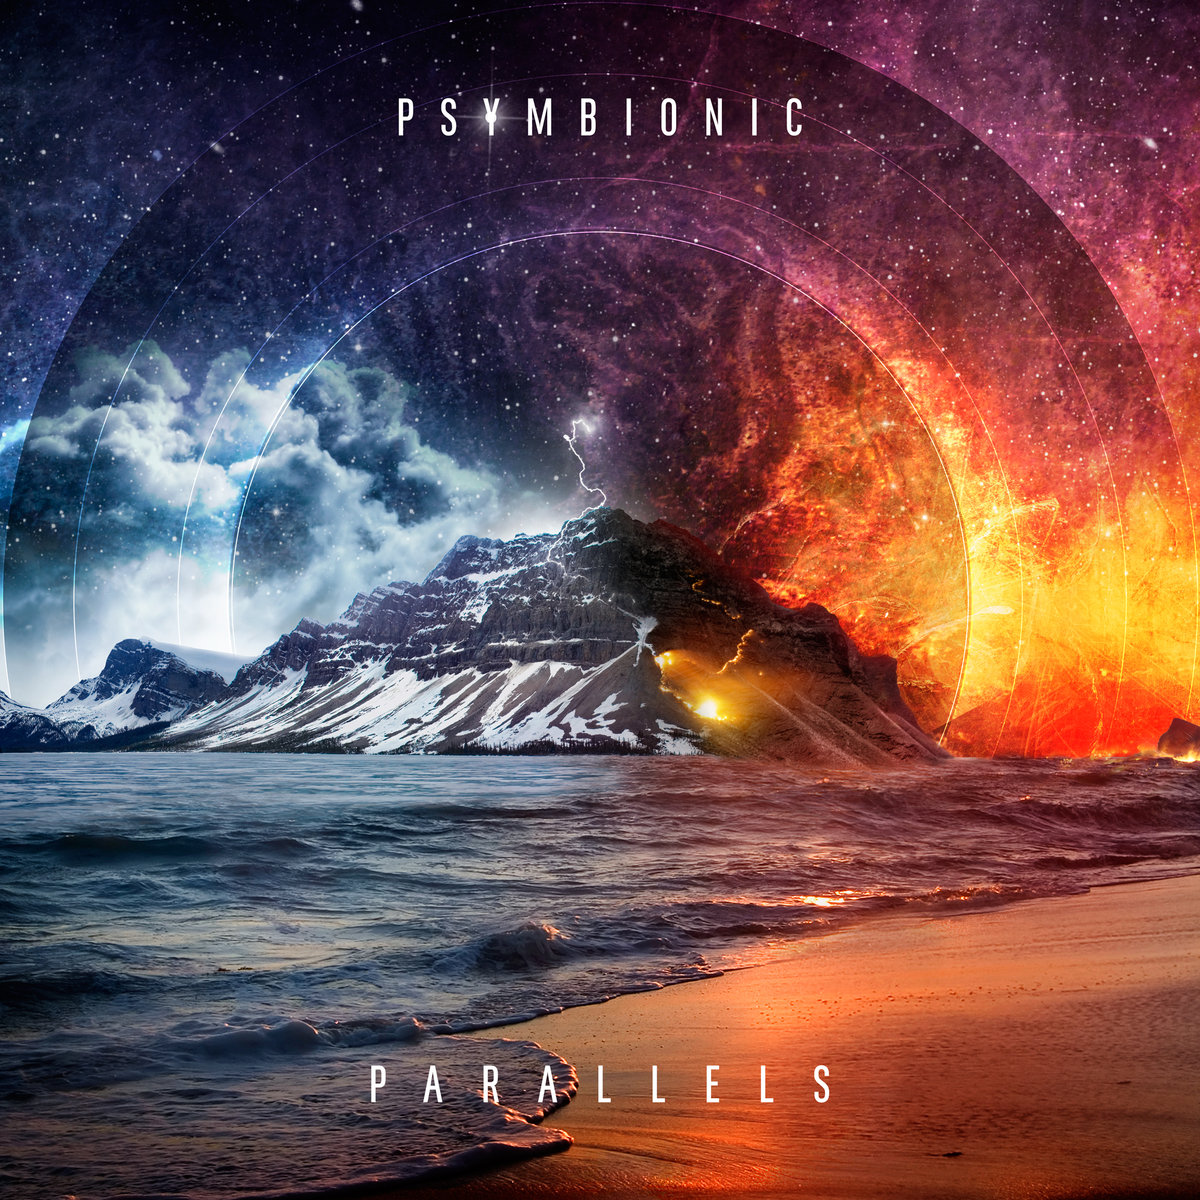 Psymbionic - Slither @ 'Parallels LP' album (electronic, dubstep)